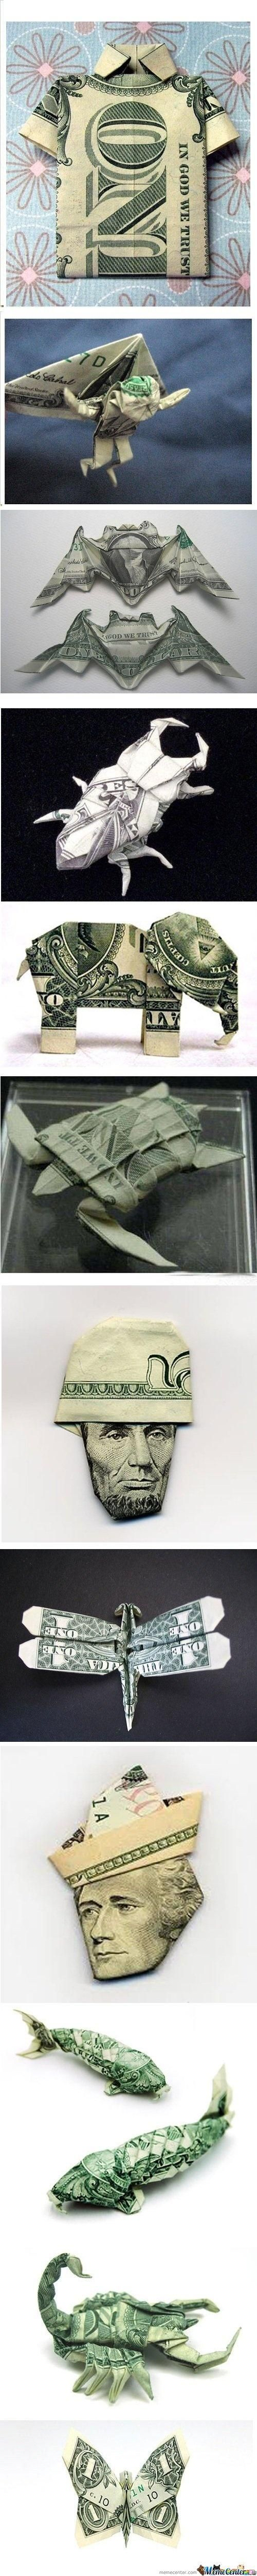 How to fold money. Creative ways to give money gifts